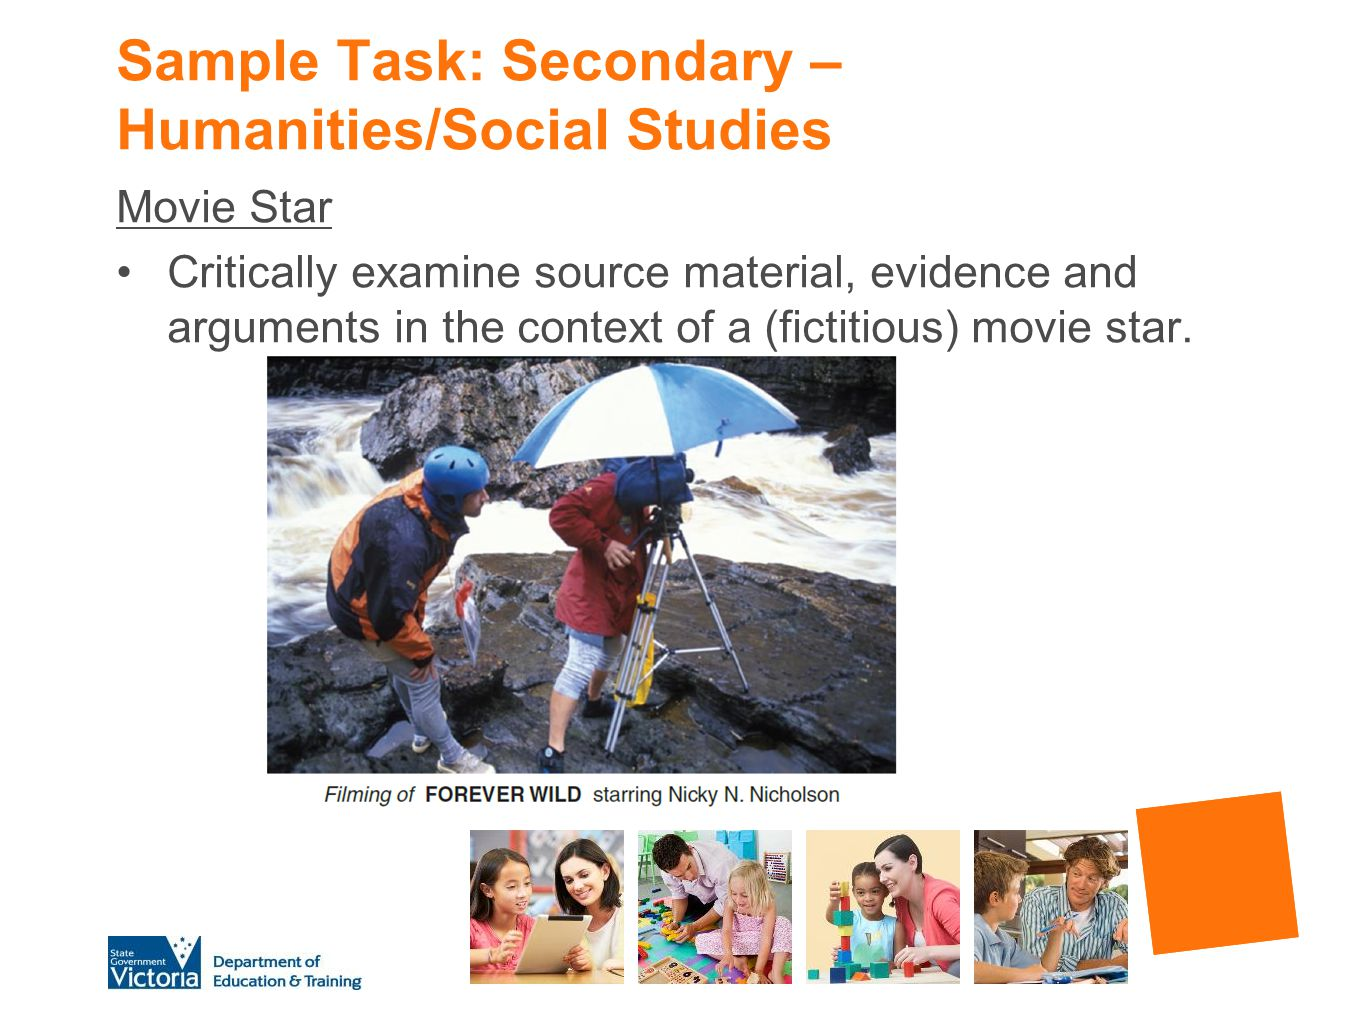 Sample Task: Secondary – Humanities/Social Studies